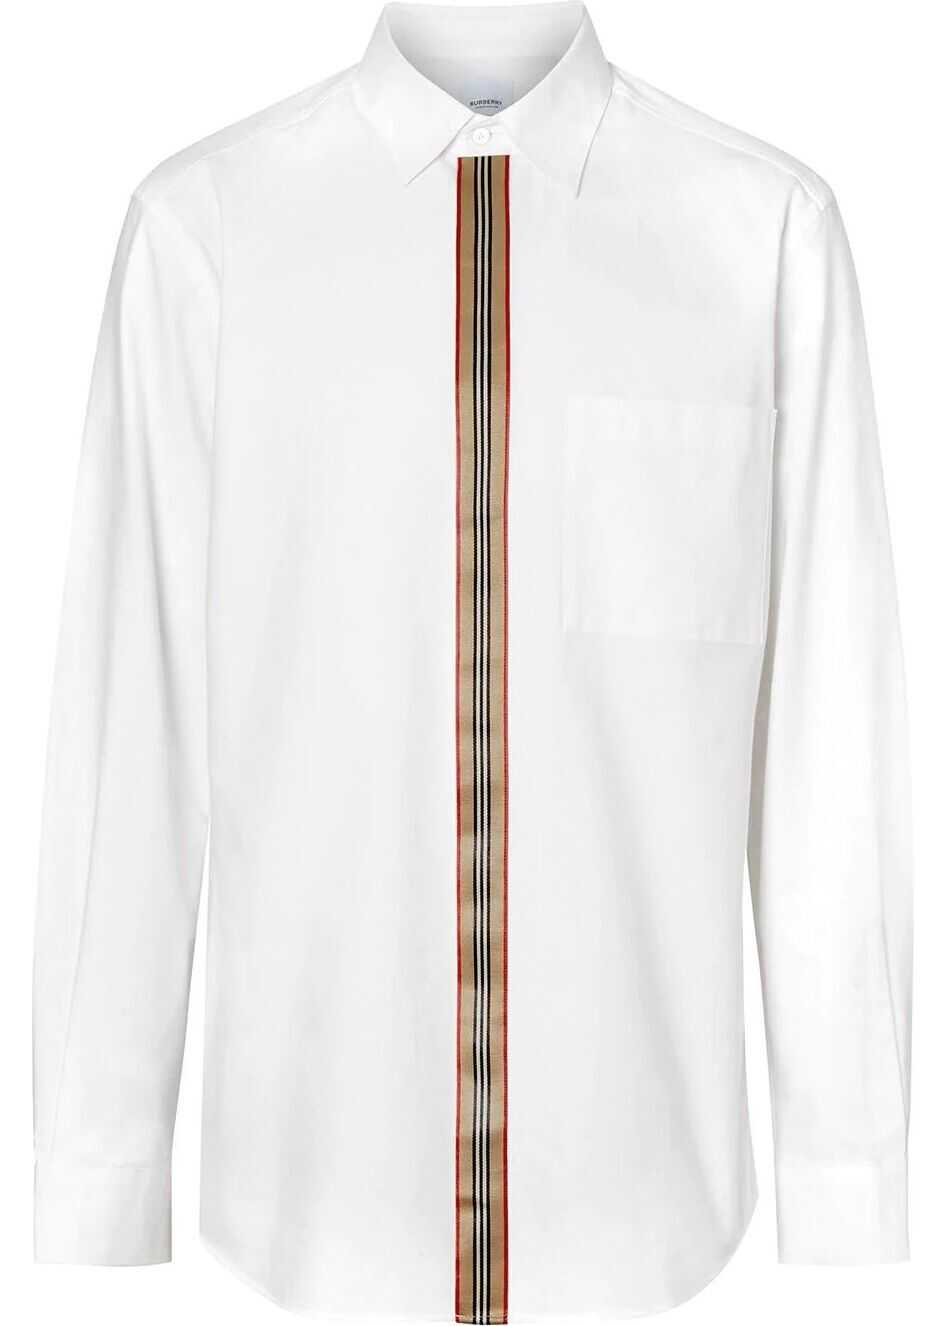 Burberry Cotton Shirt WHITE